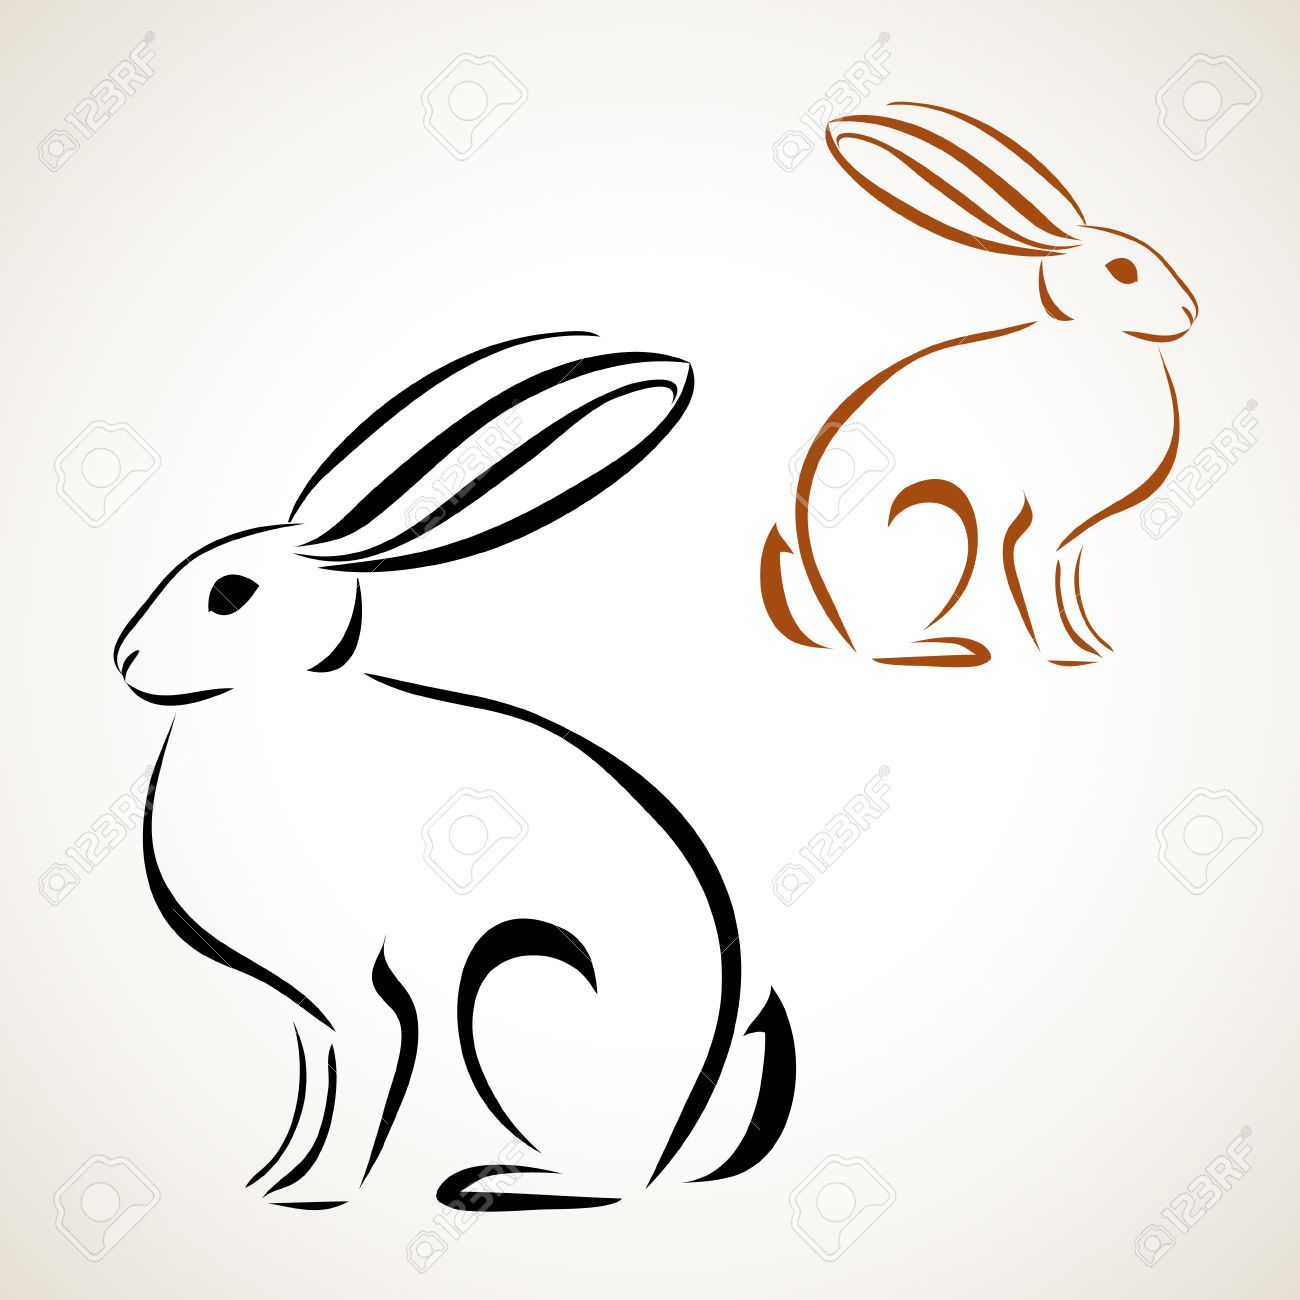 easter card with rabbit outline royalty free cliparts vectors  [ 1300 x 1300 Pixel ]